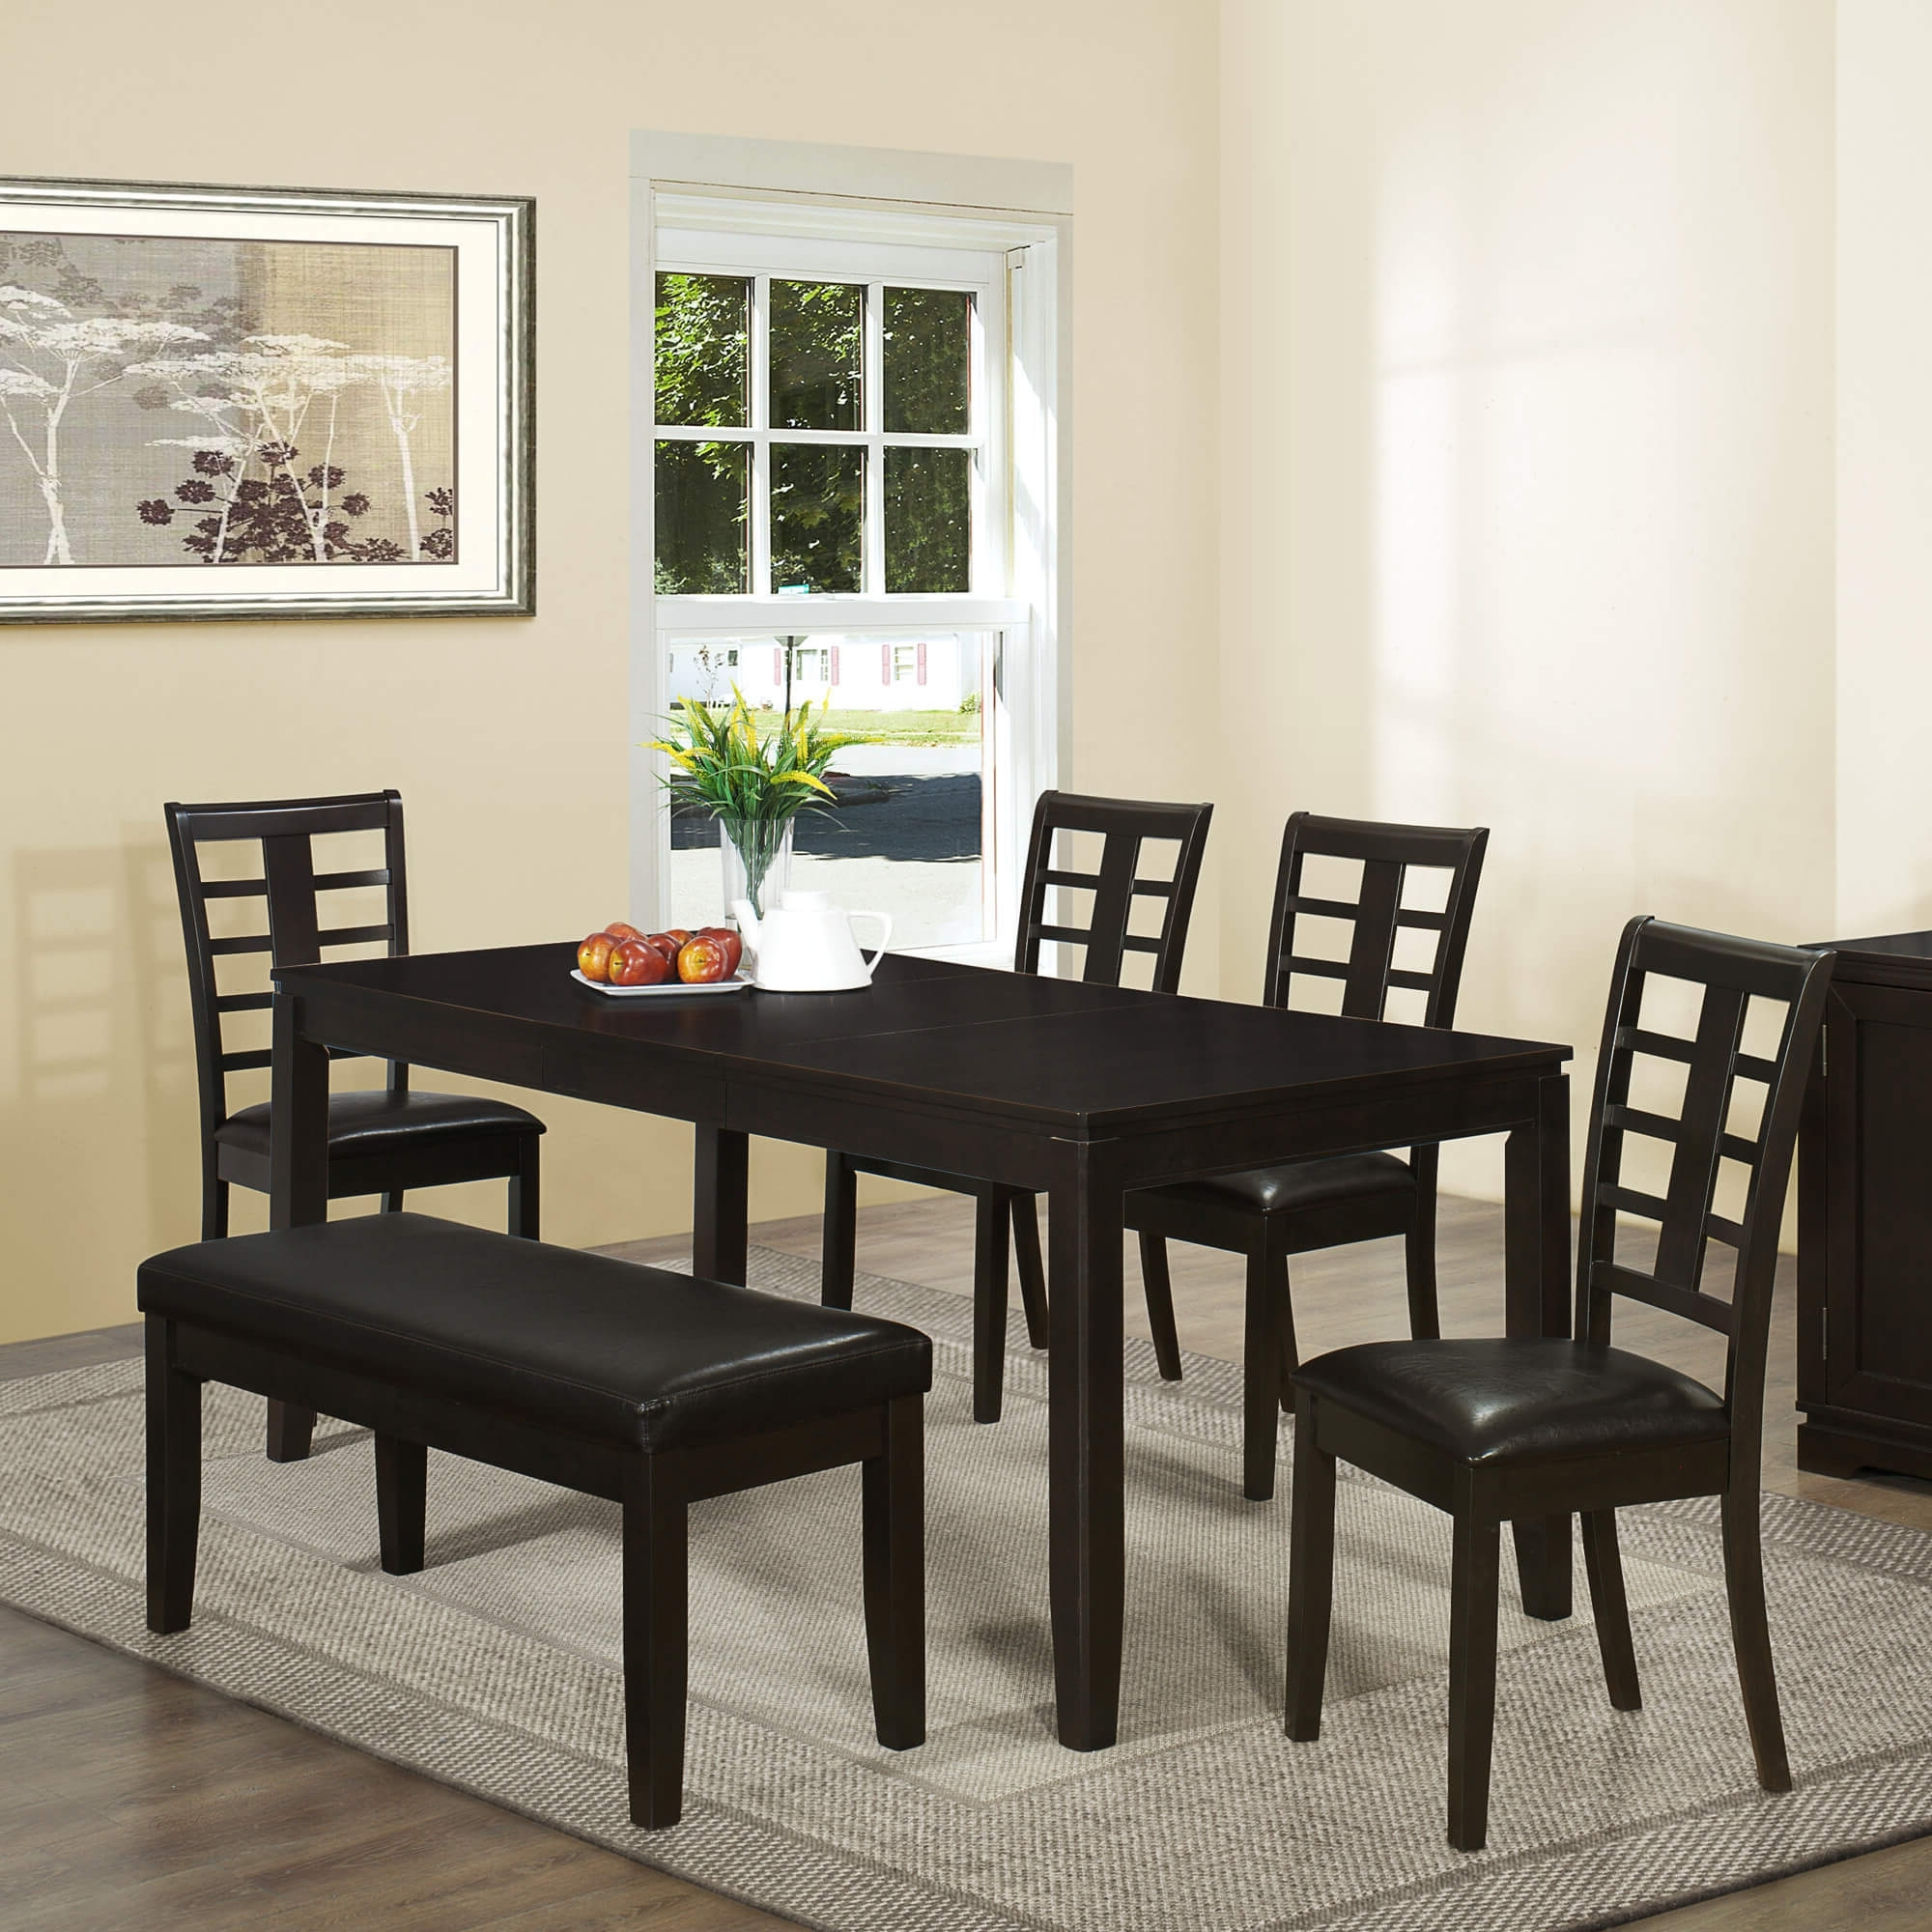 Small Dining Tables And Chairs In Preferred 26 Dining Room Sets (Big And Small) With Bench Seating (2018) (View 11 of 25)